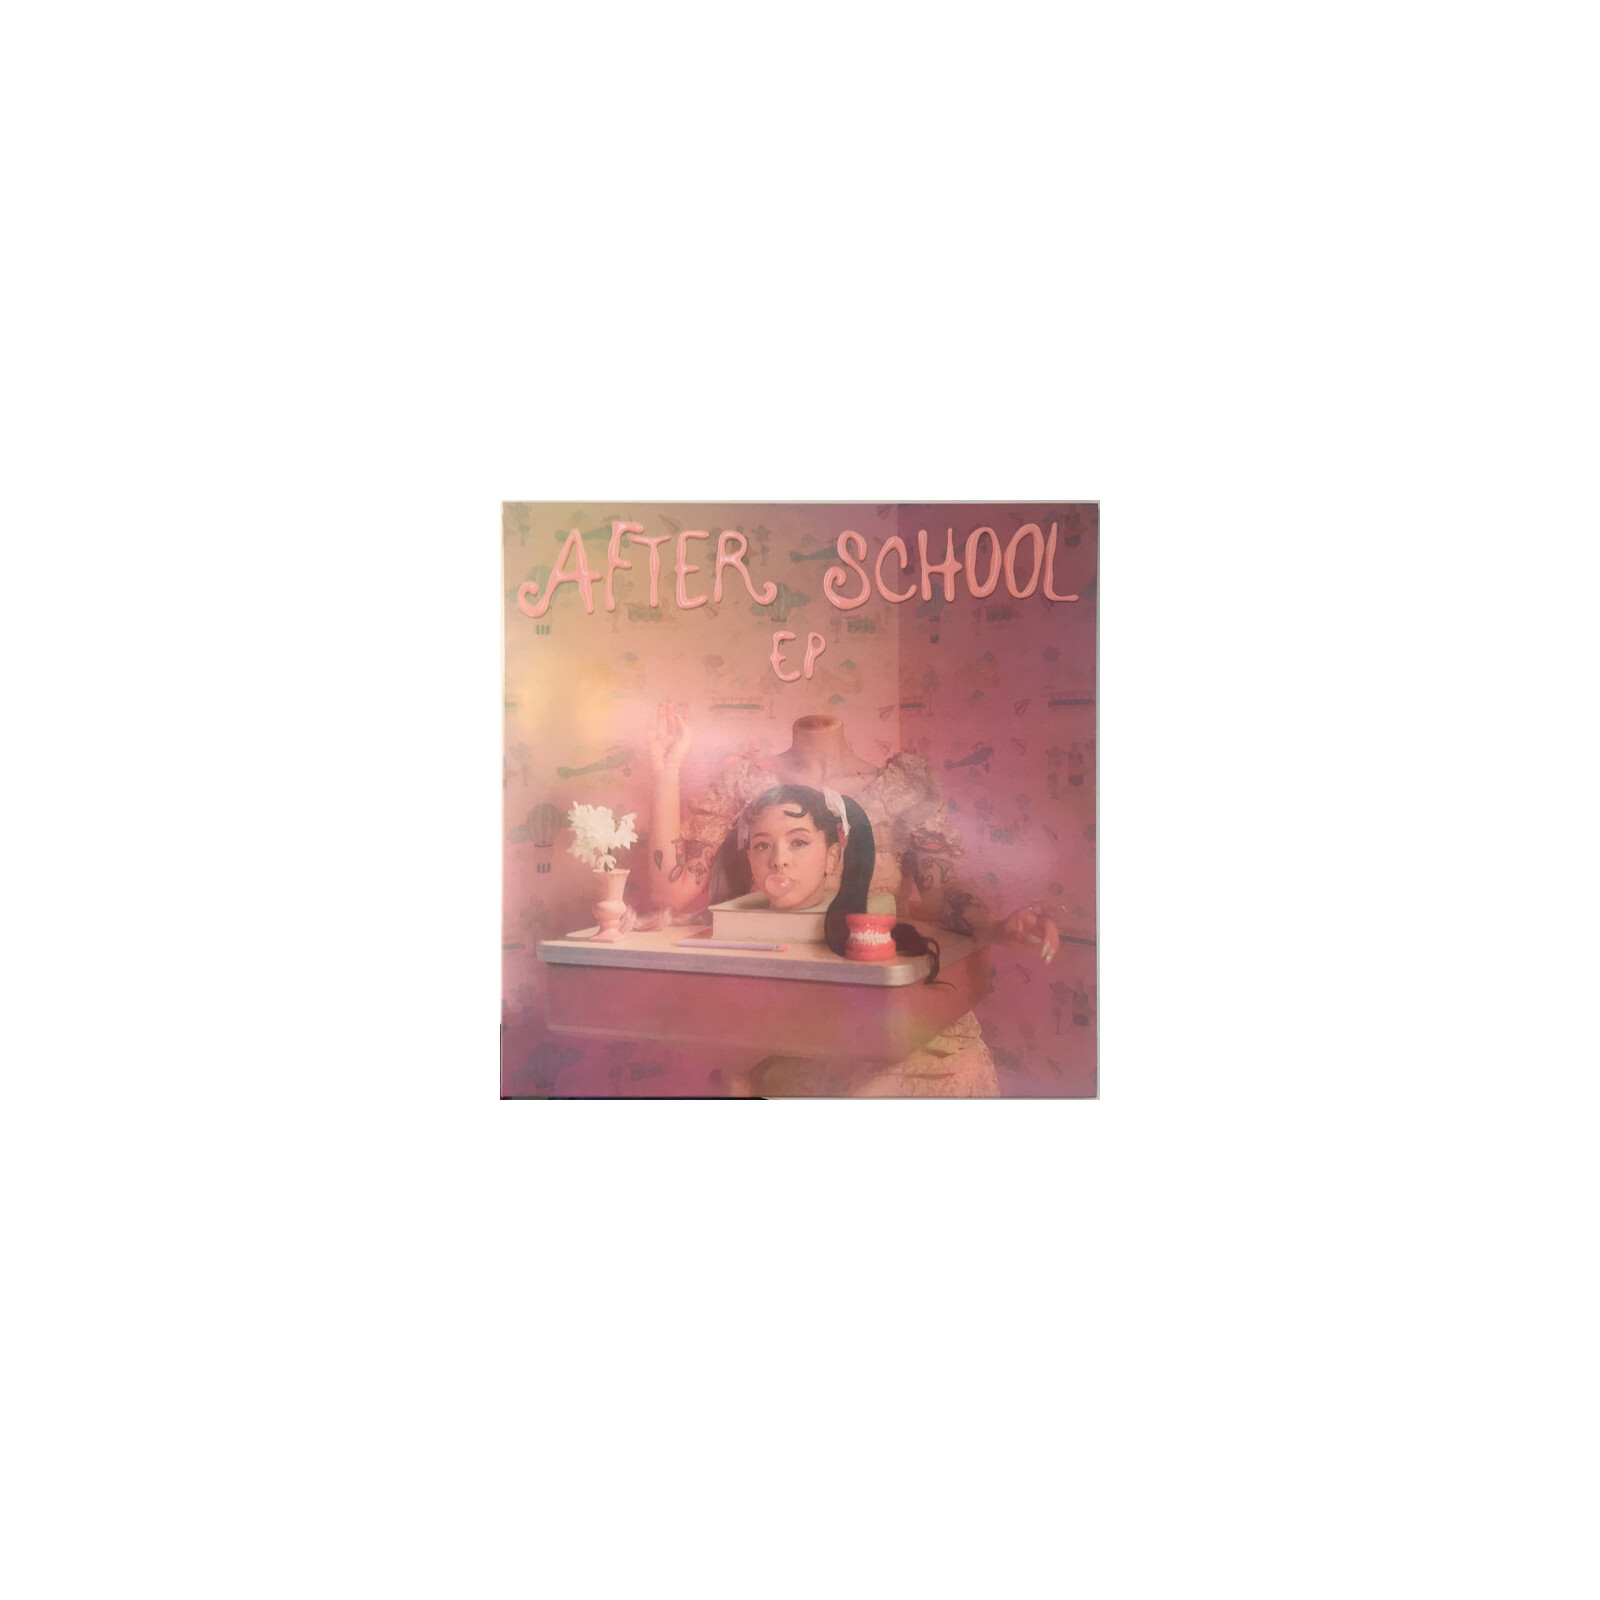 MELANIE MARTINEZ - AFTER SCHOOL BLUE VINYL